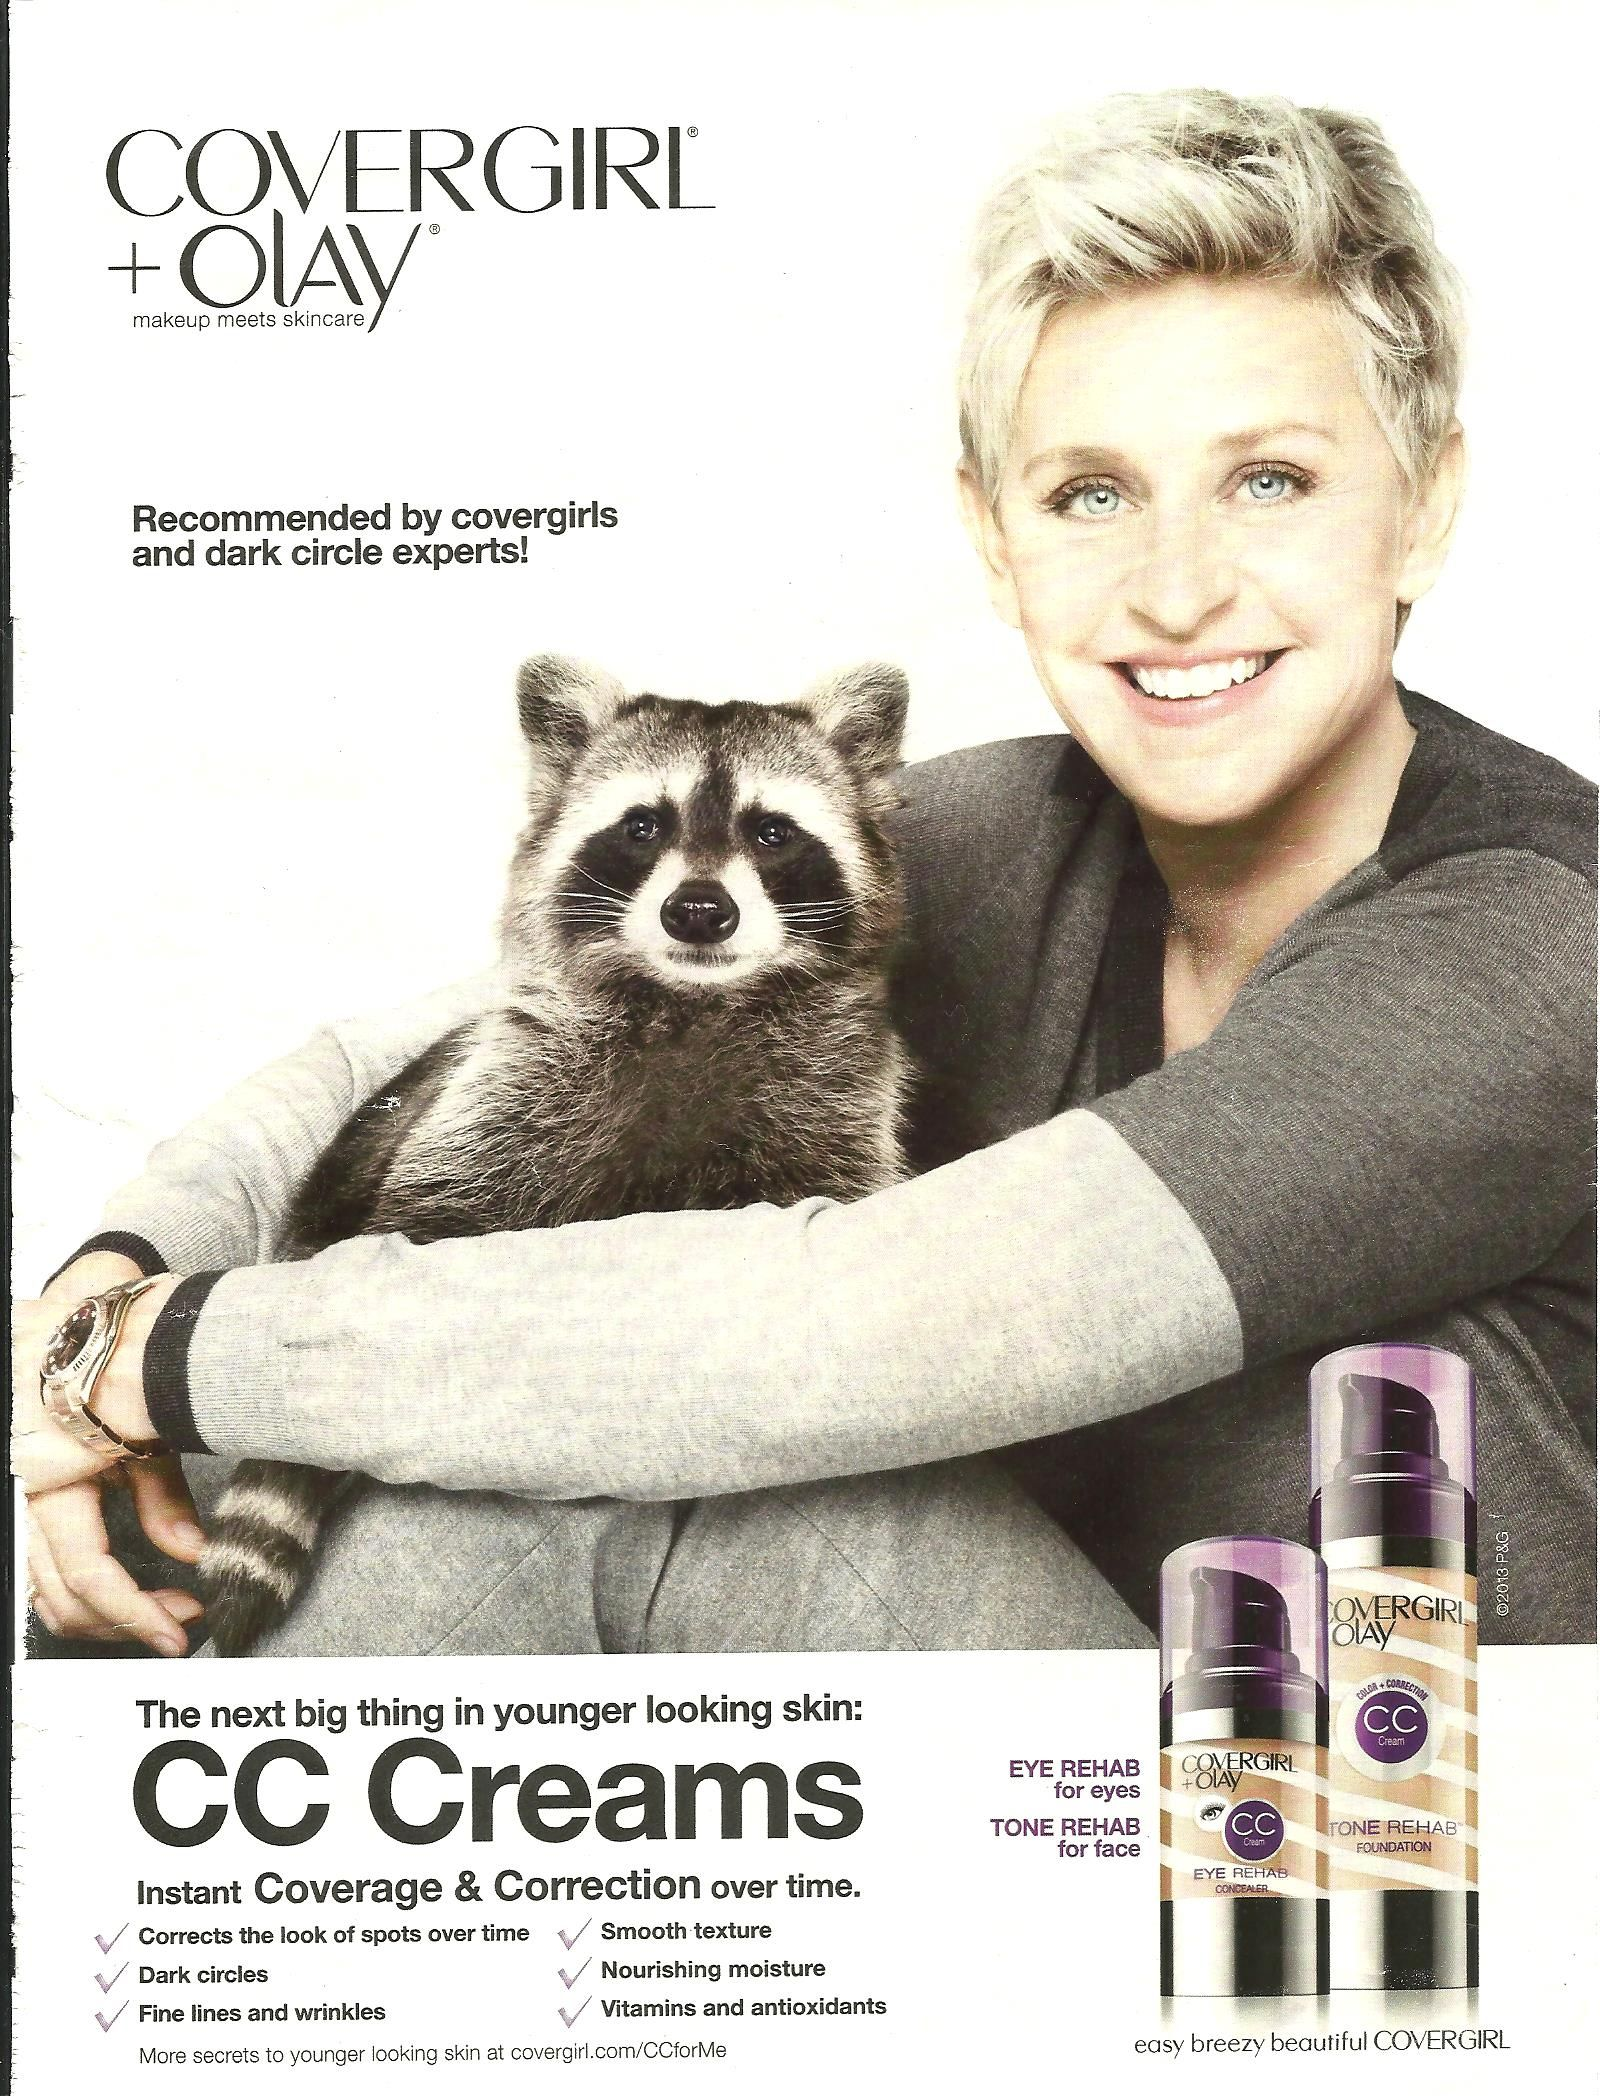 17+ Does olay test on animals images